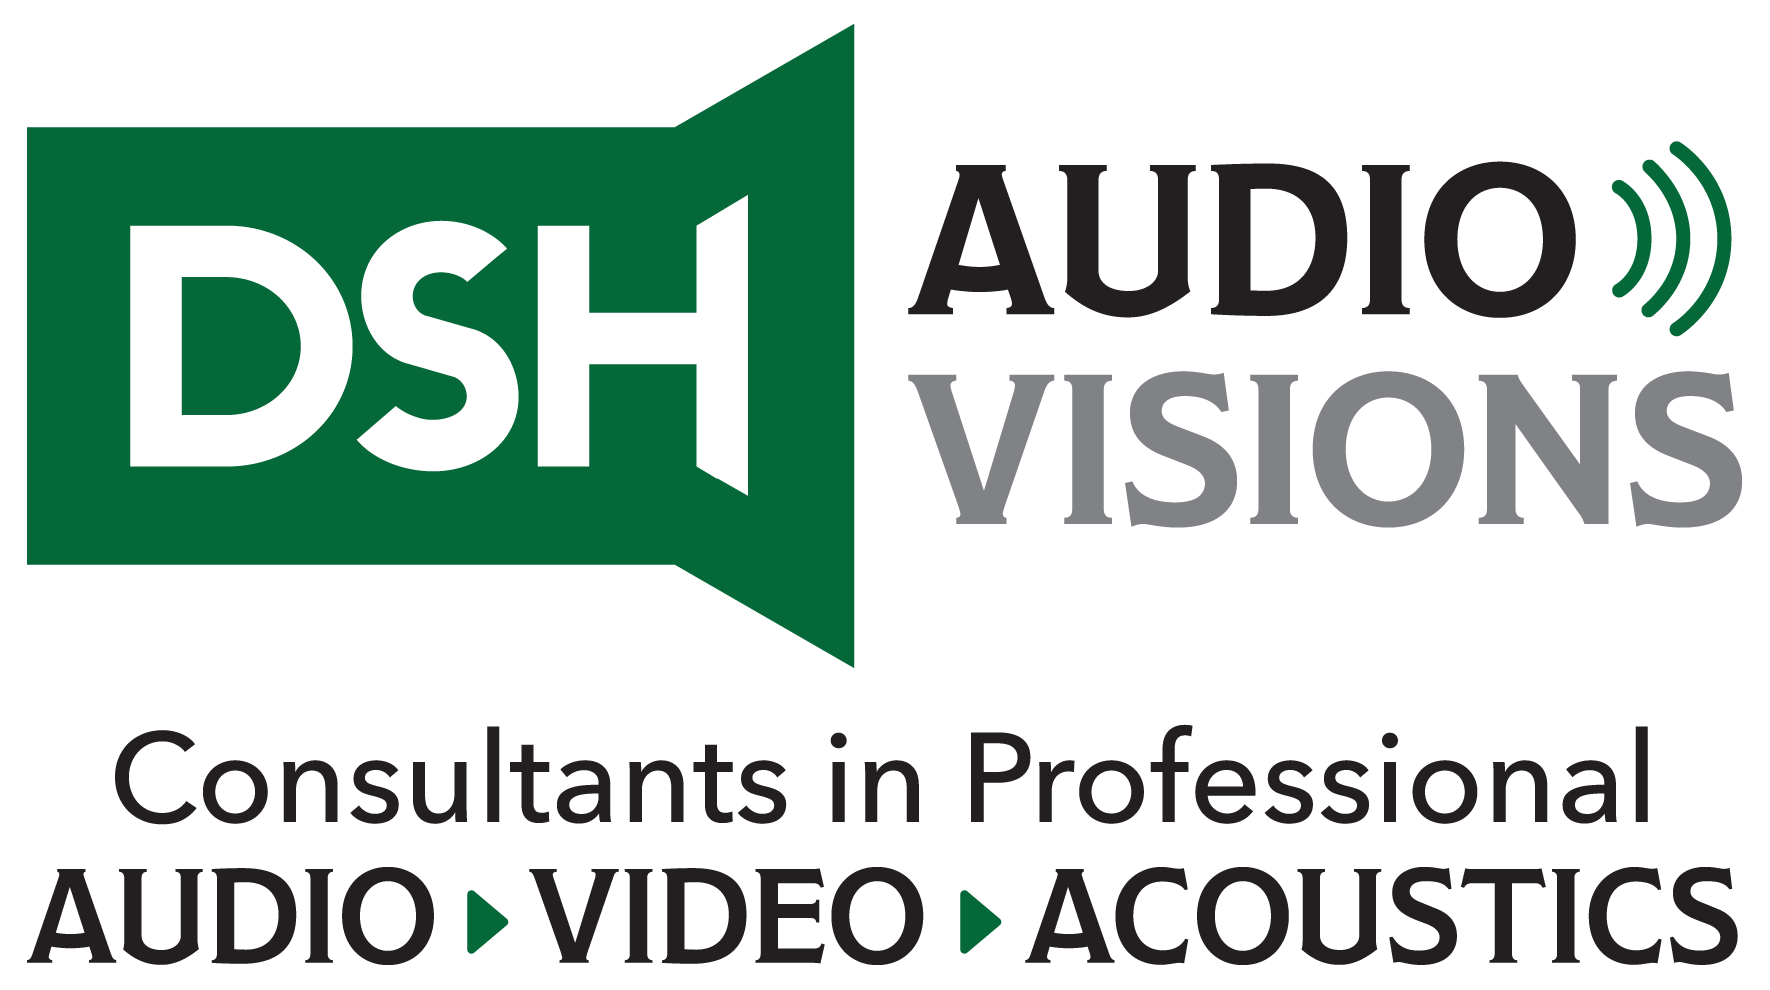 DSH Audio Visions LLC Logo